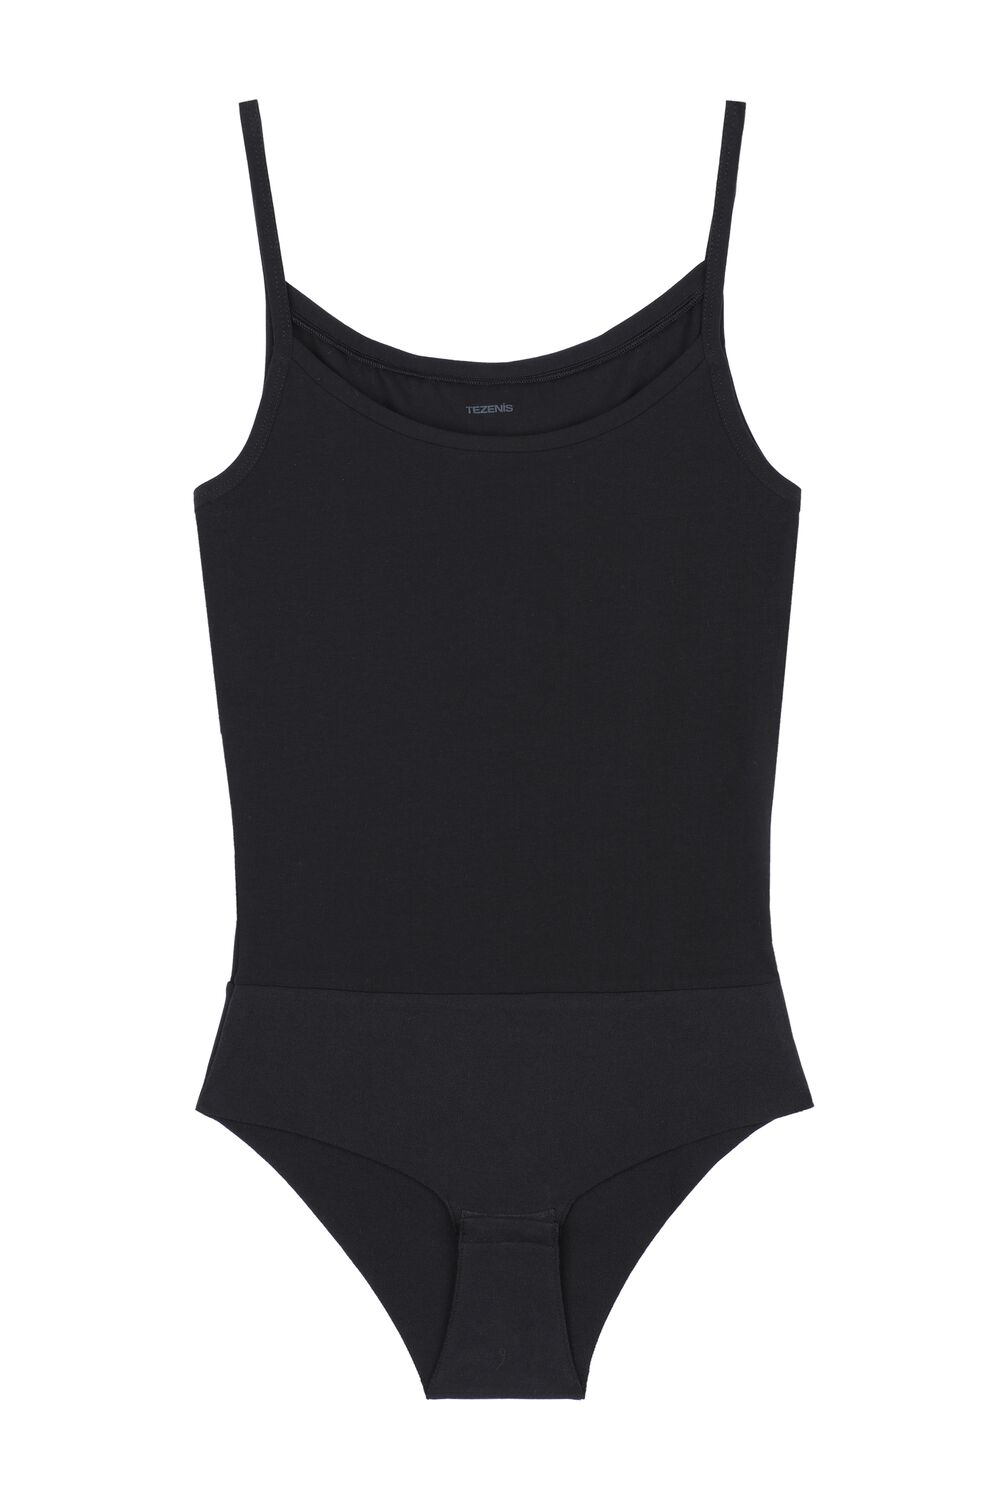 Cotton Body With Thin Stripes